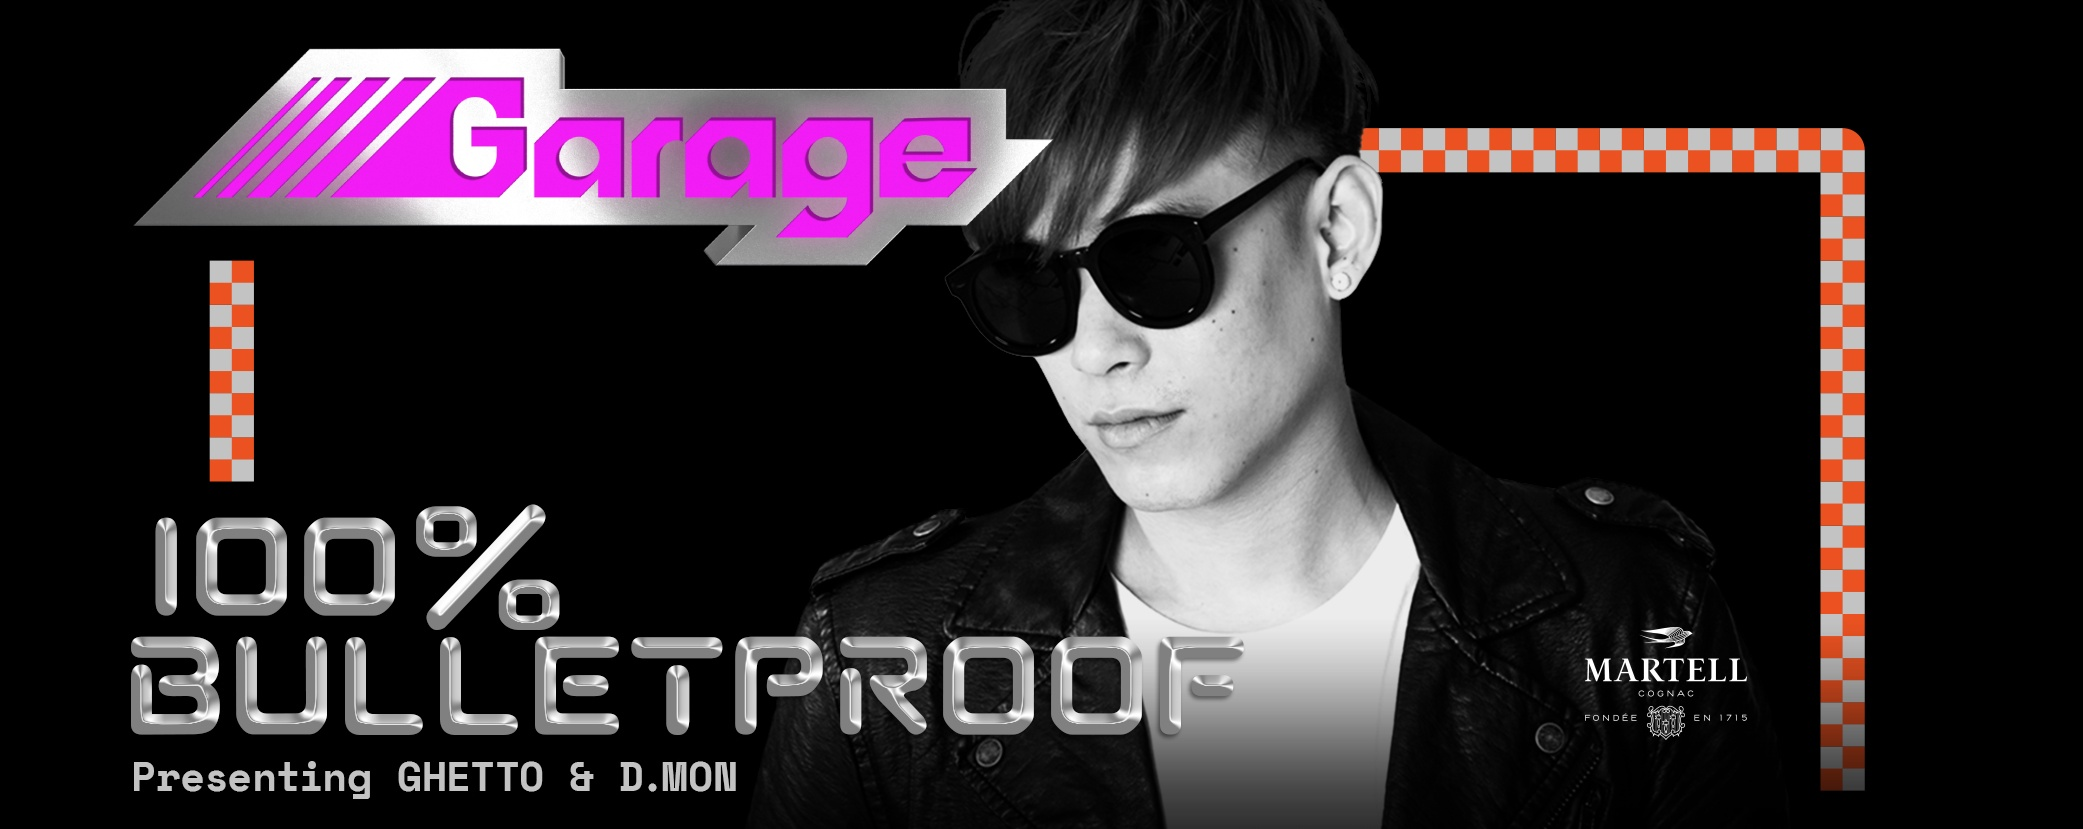 Martell Red Barrel Presents Garage ft. 100% Bulletproof with Ghetto & D.Mon (Zouk F1 Weekend)